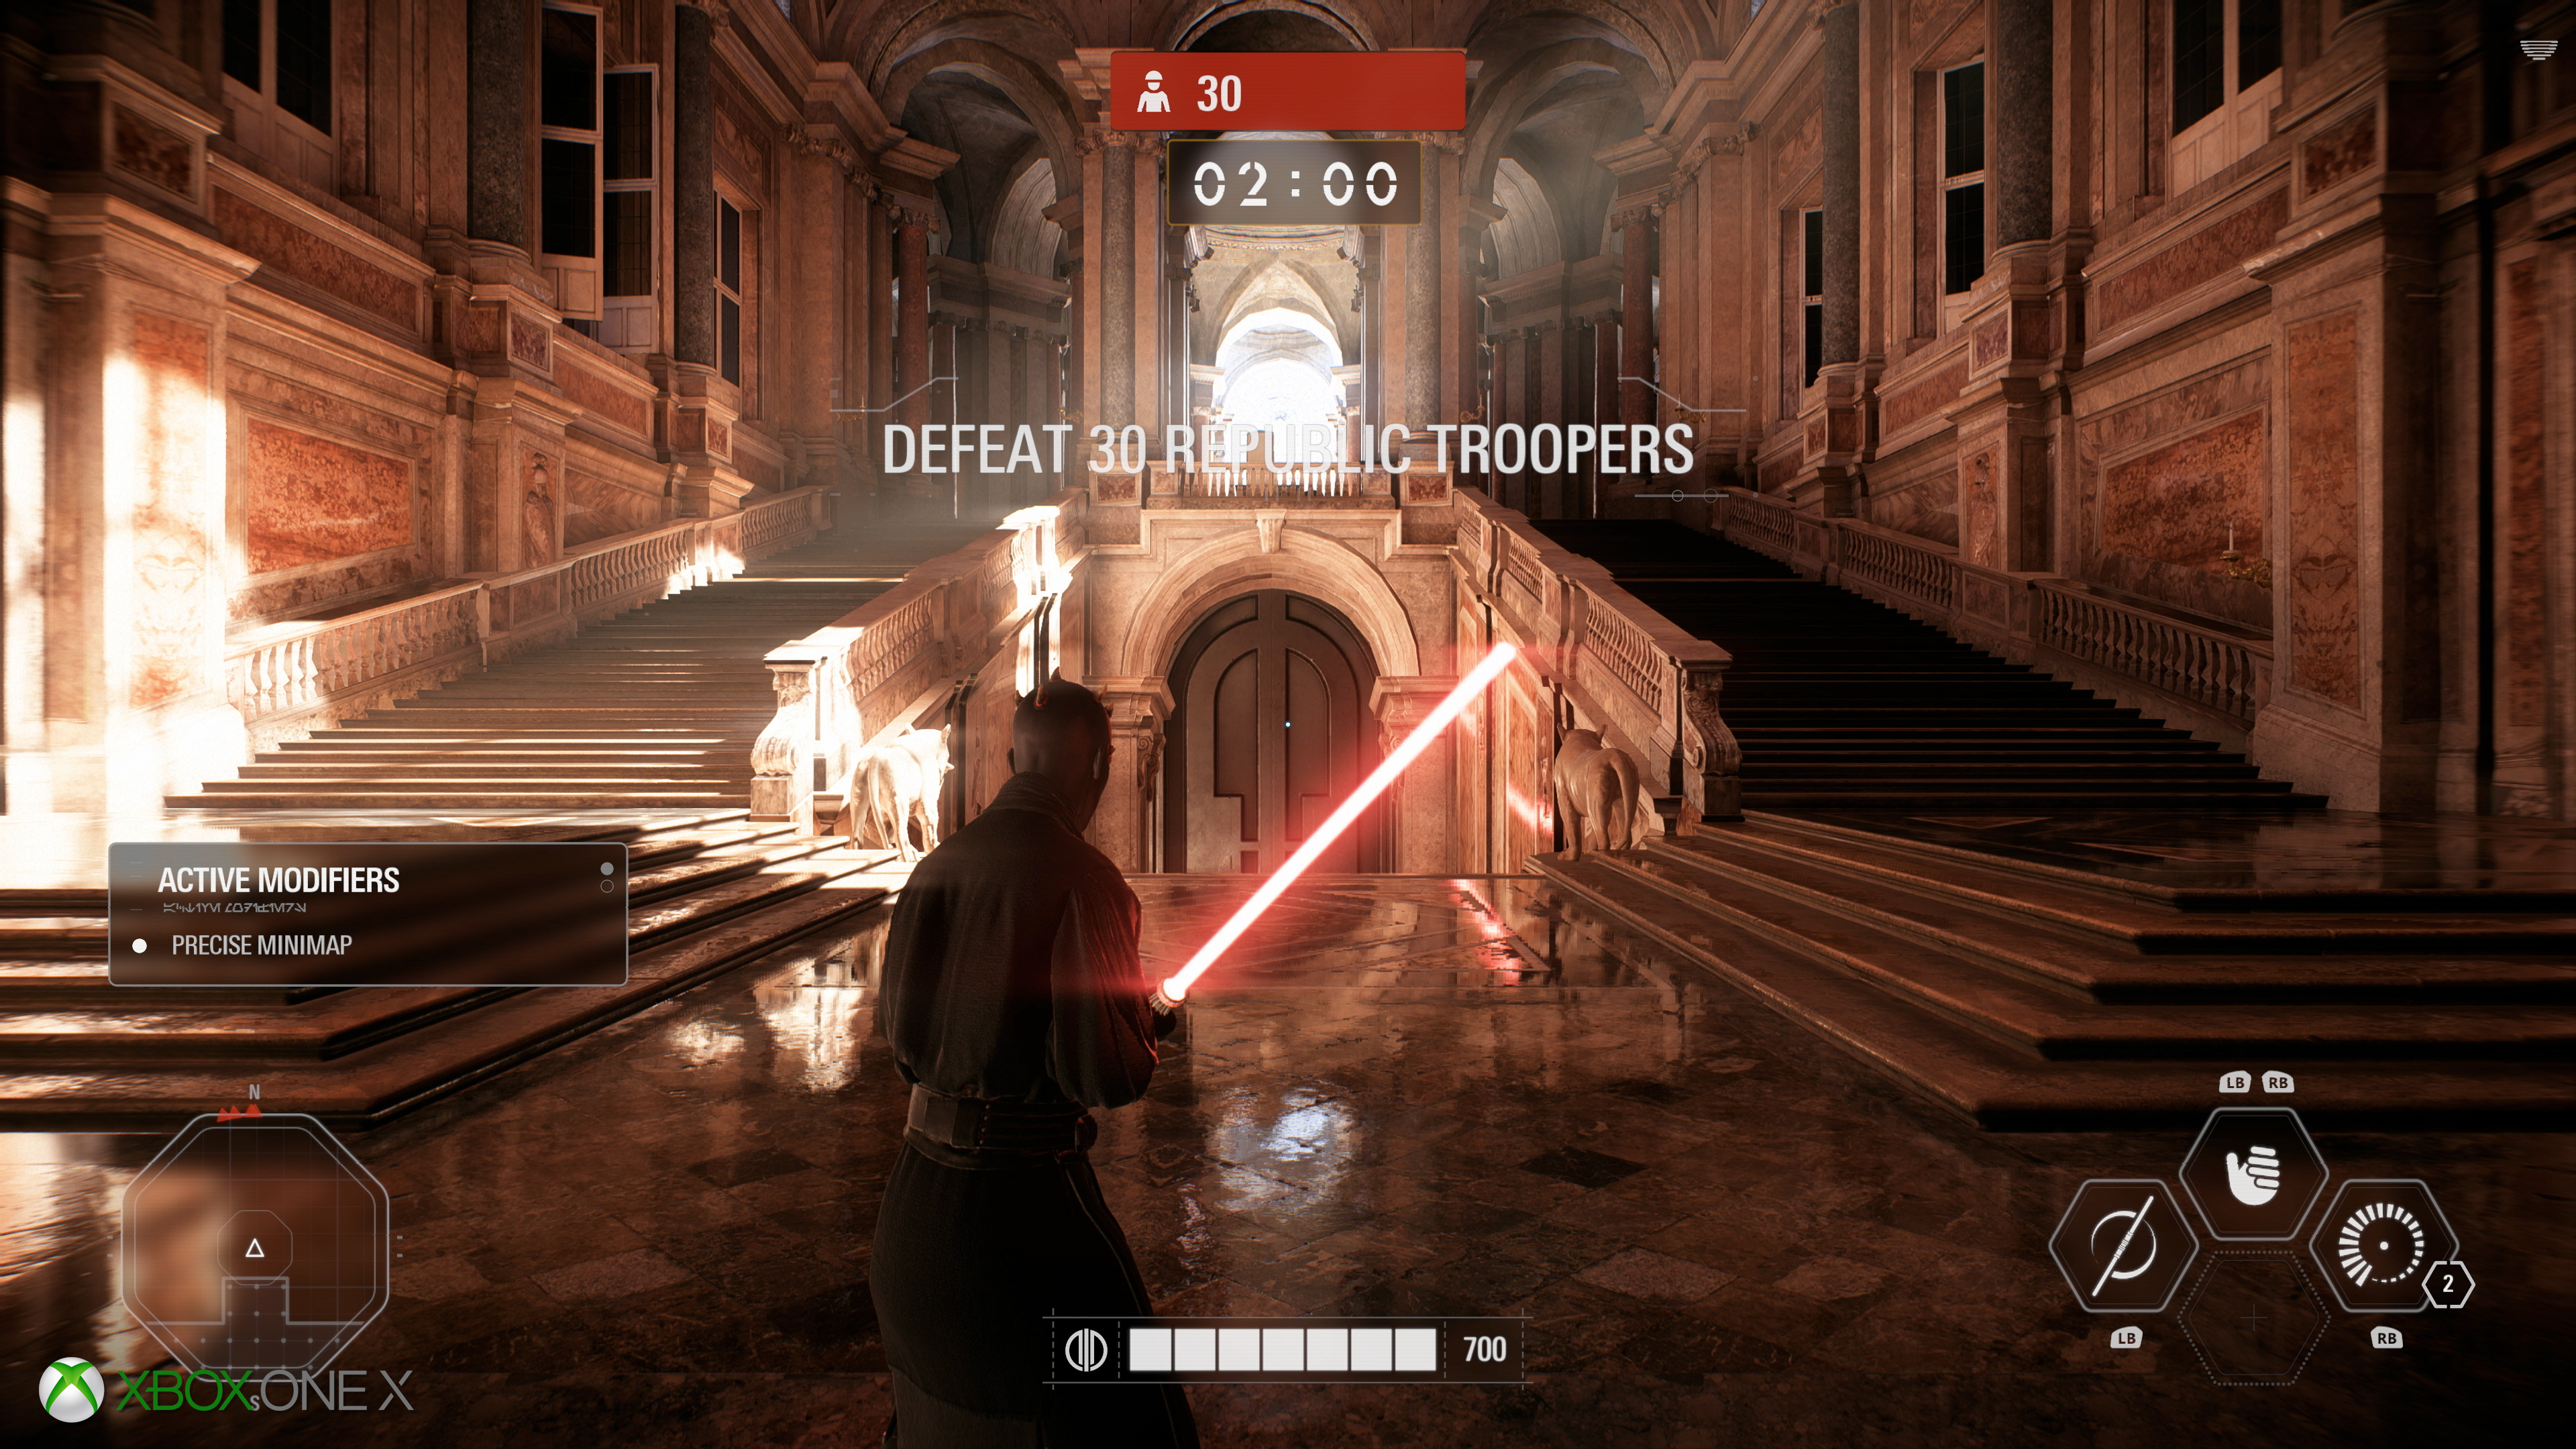 Star Wars Battlefront 2: Frostbite stress-tested on Xbox One